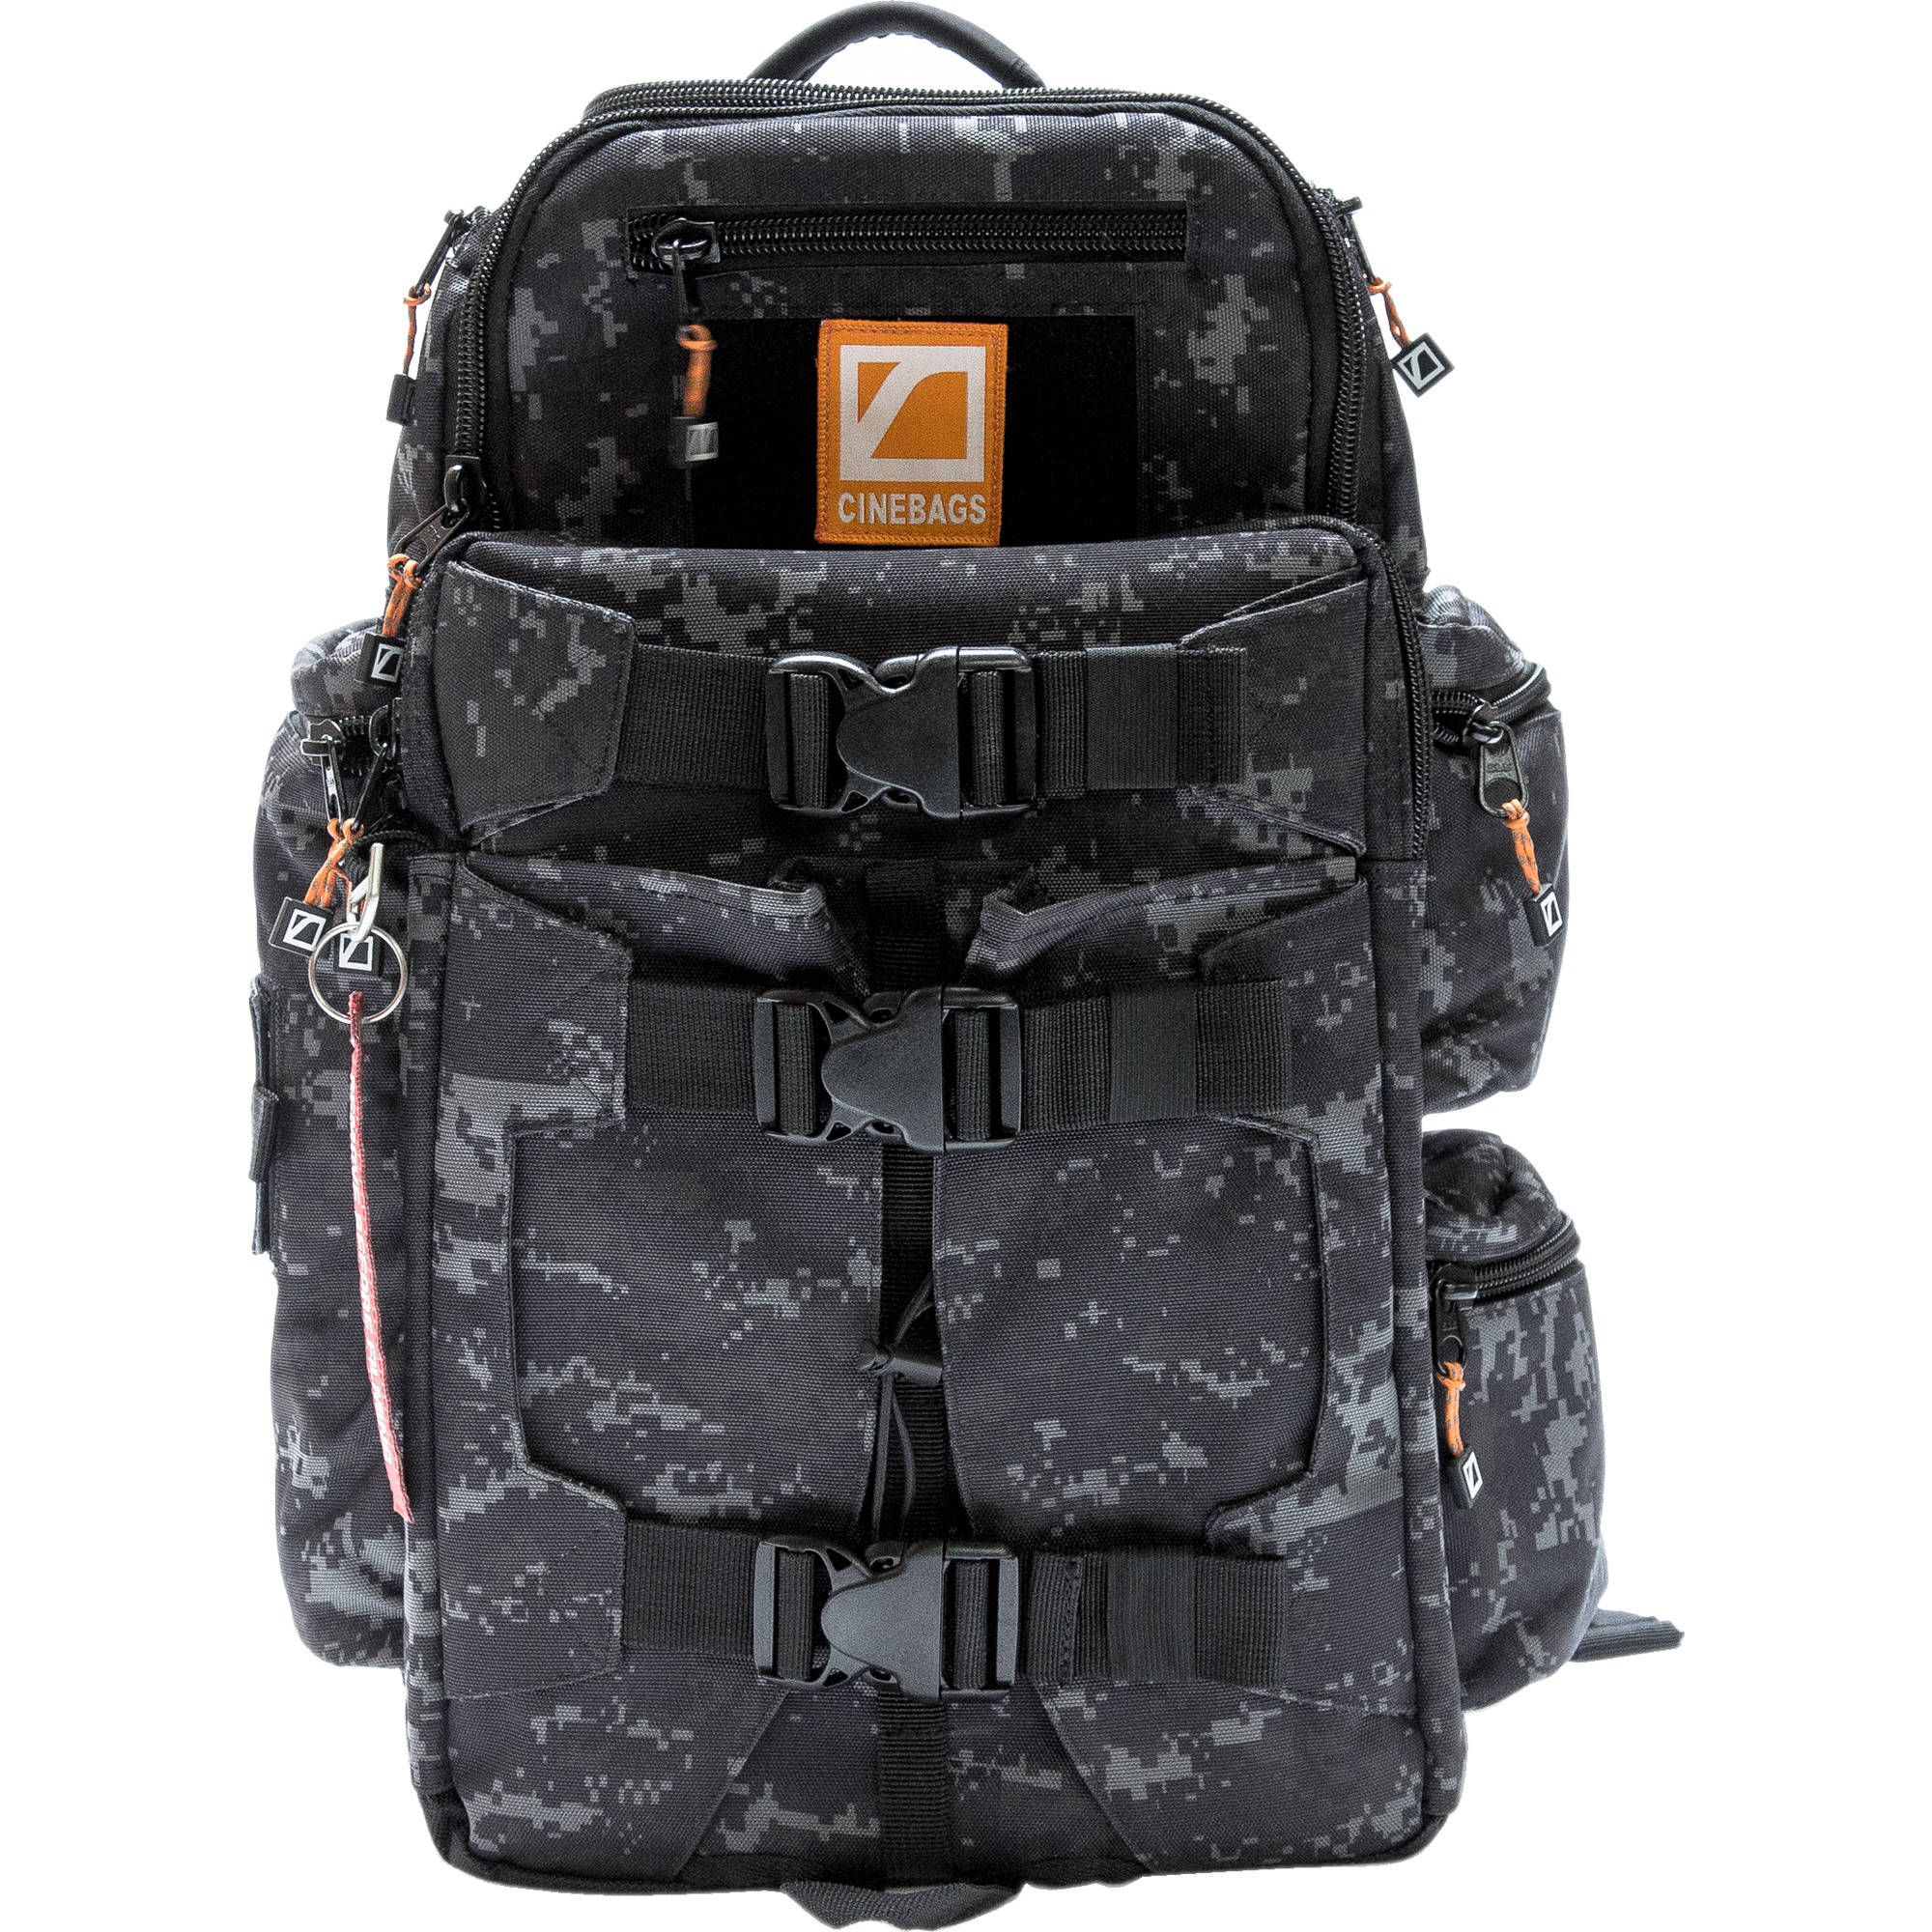 Cinebags Cb25b Revolution Backpack Tactical Camo